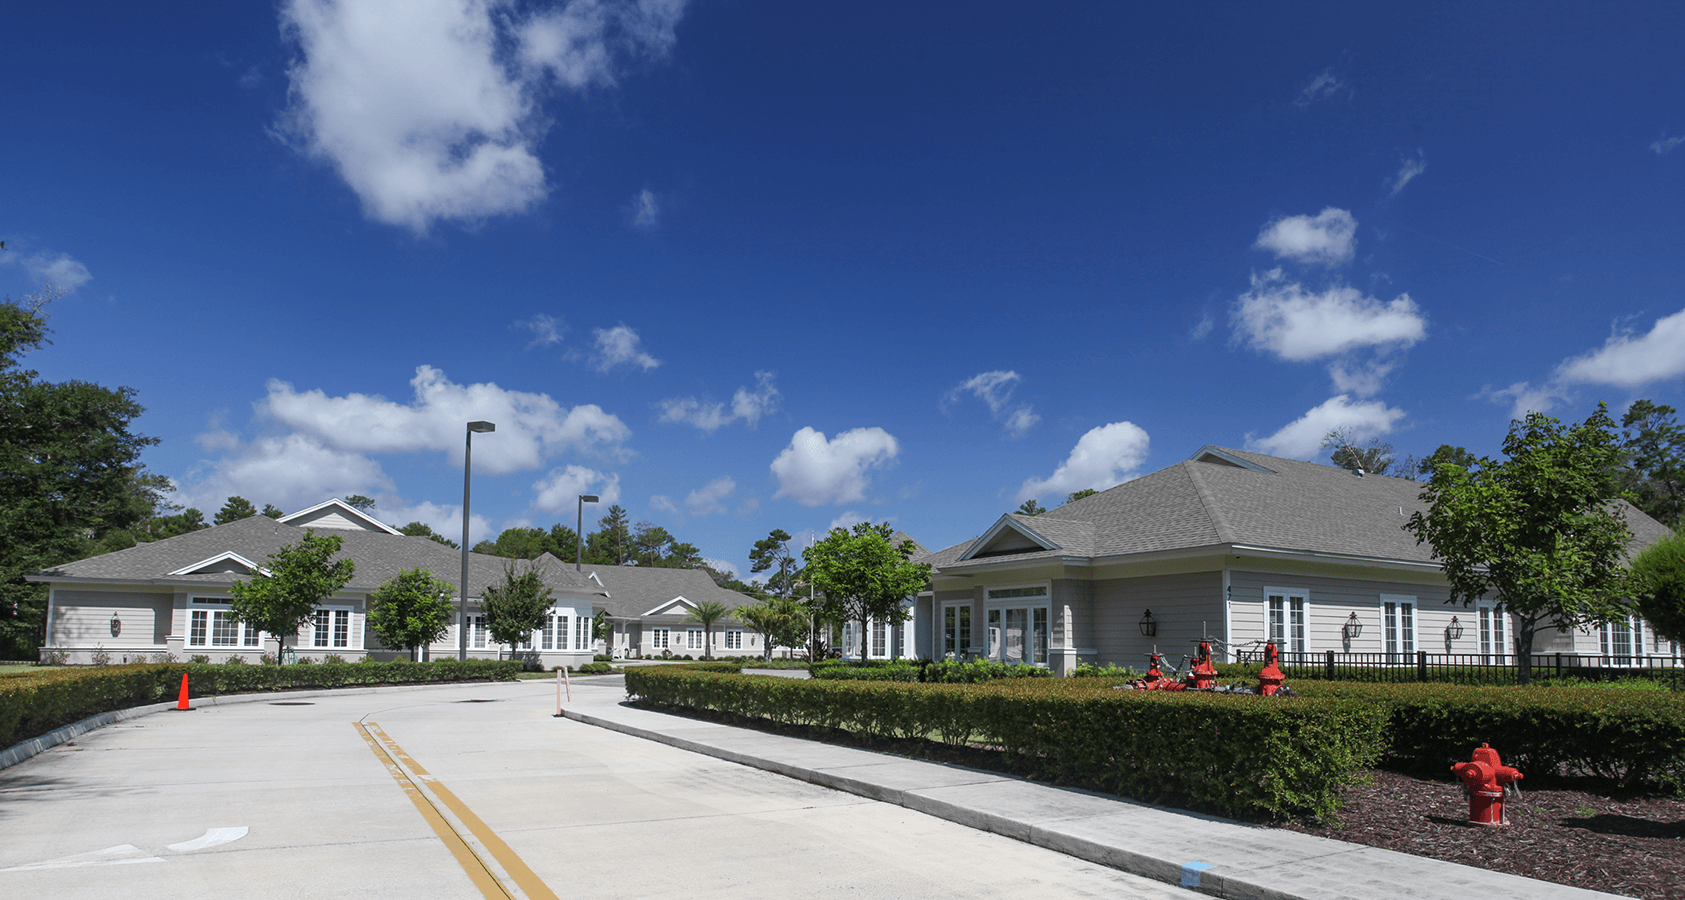 Entrance to Riverside cottages subdivision